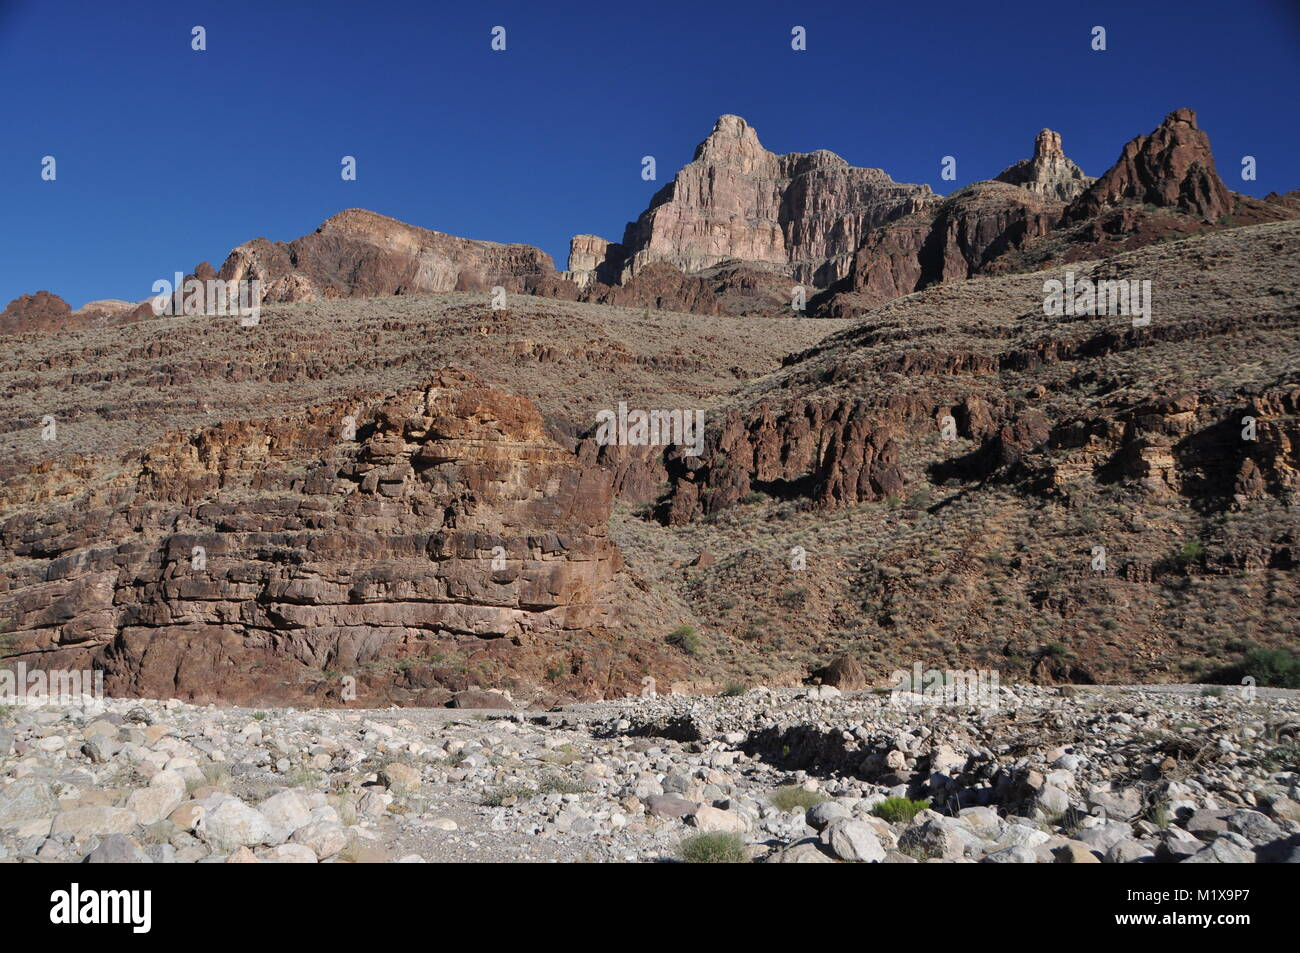 Diamond Peak as seen from Peach Springs Canyon, a tributary to the Grand Canyon, Lake Mead National Recreation Area, - Stock Image